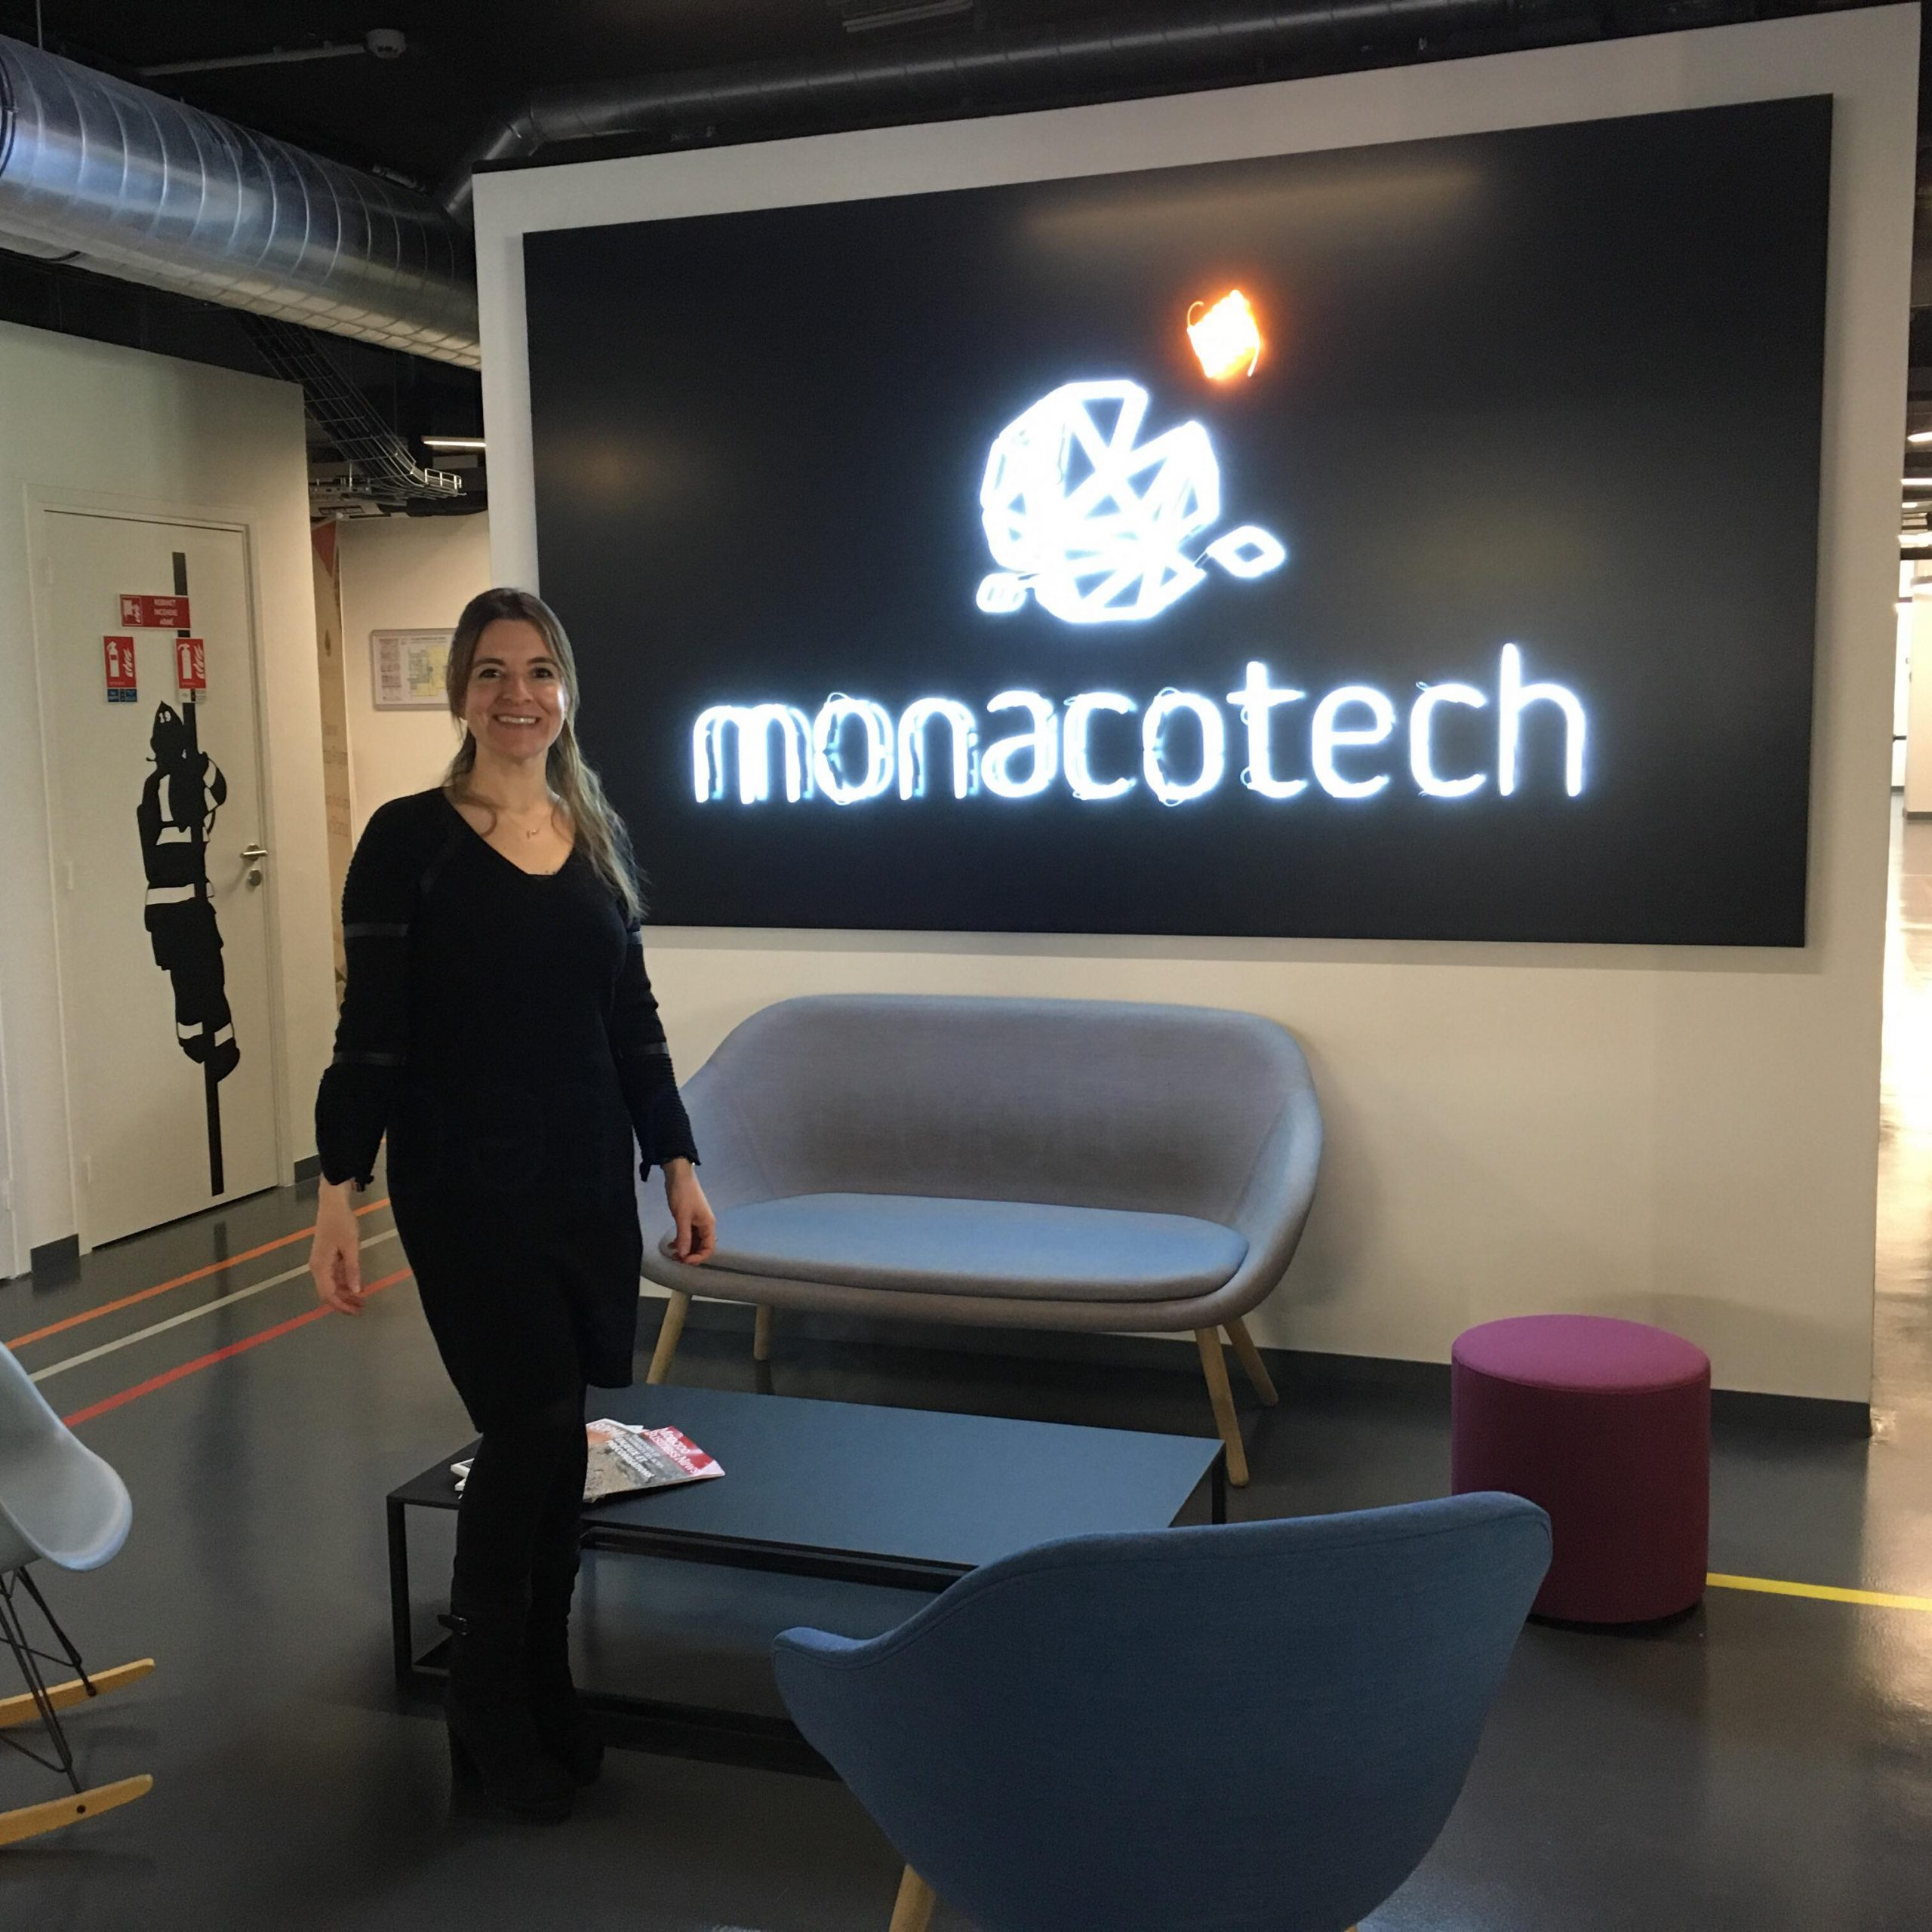 Monaco Tech evenement